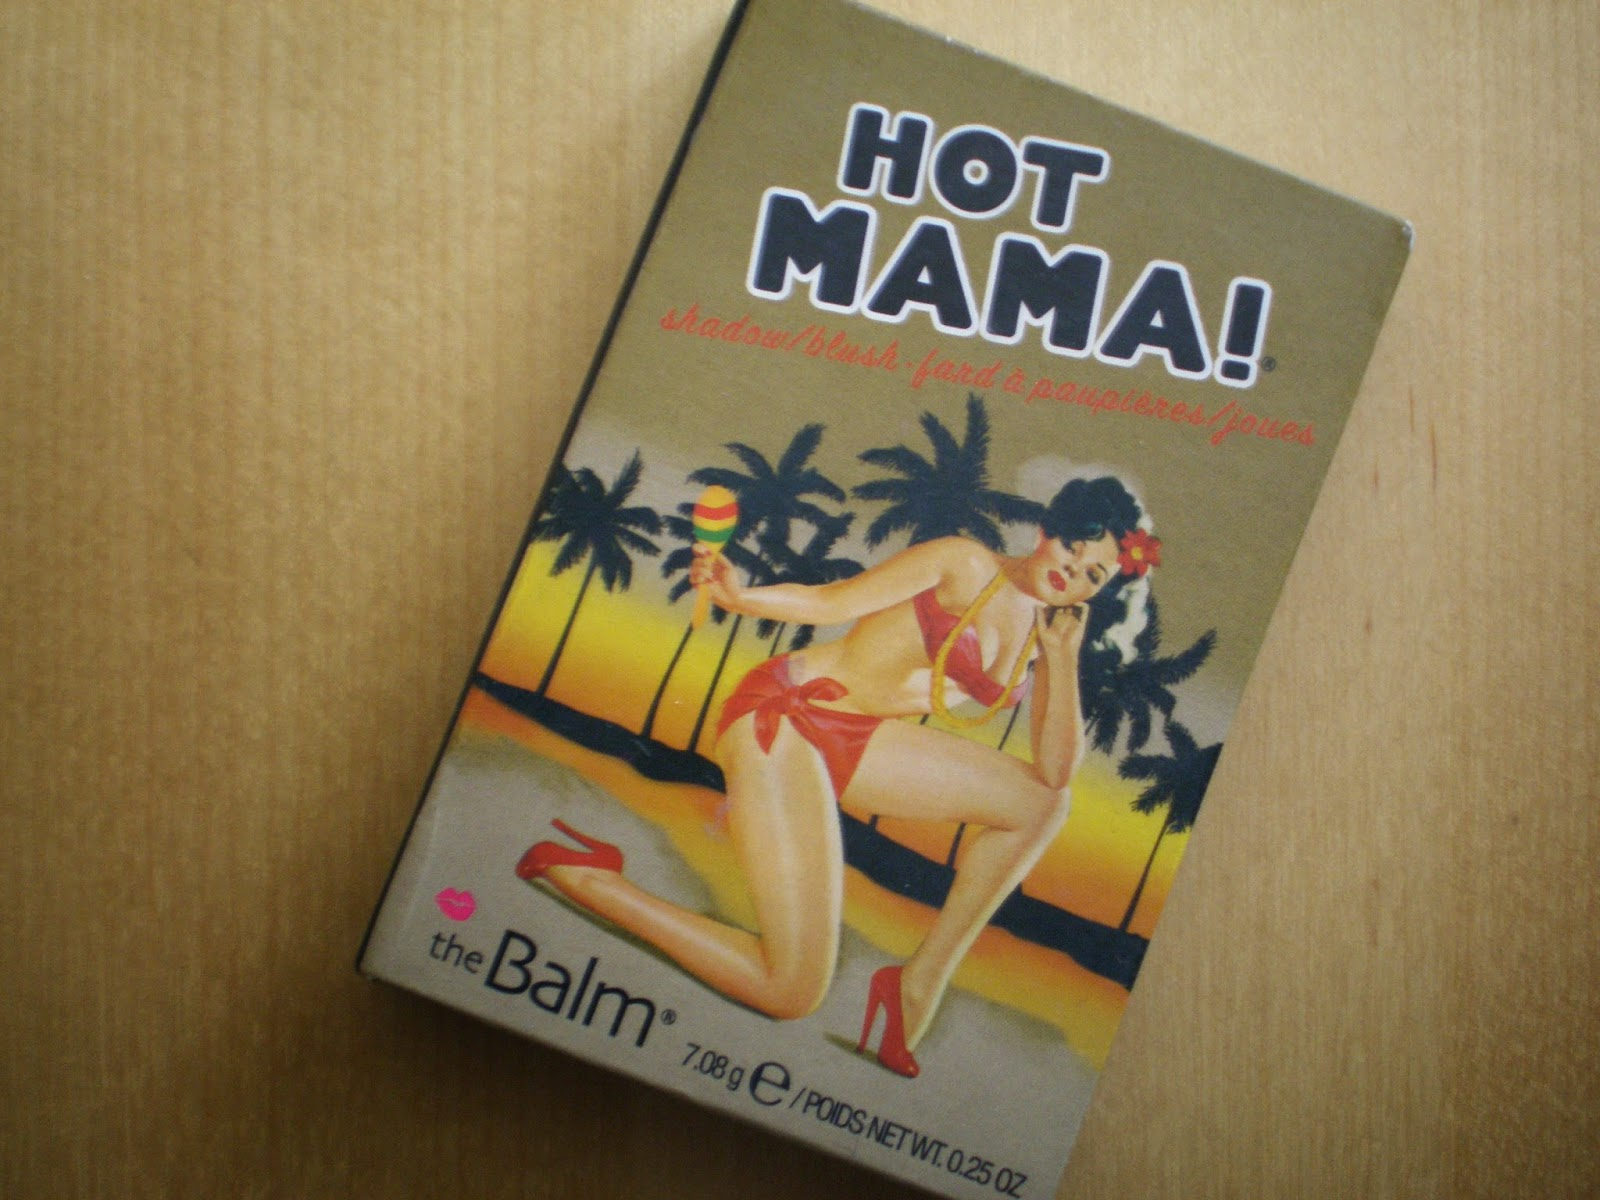 Hot Mama! by The Balm